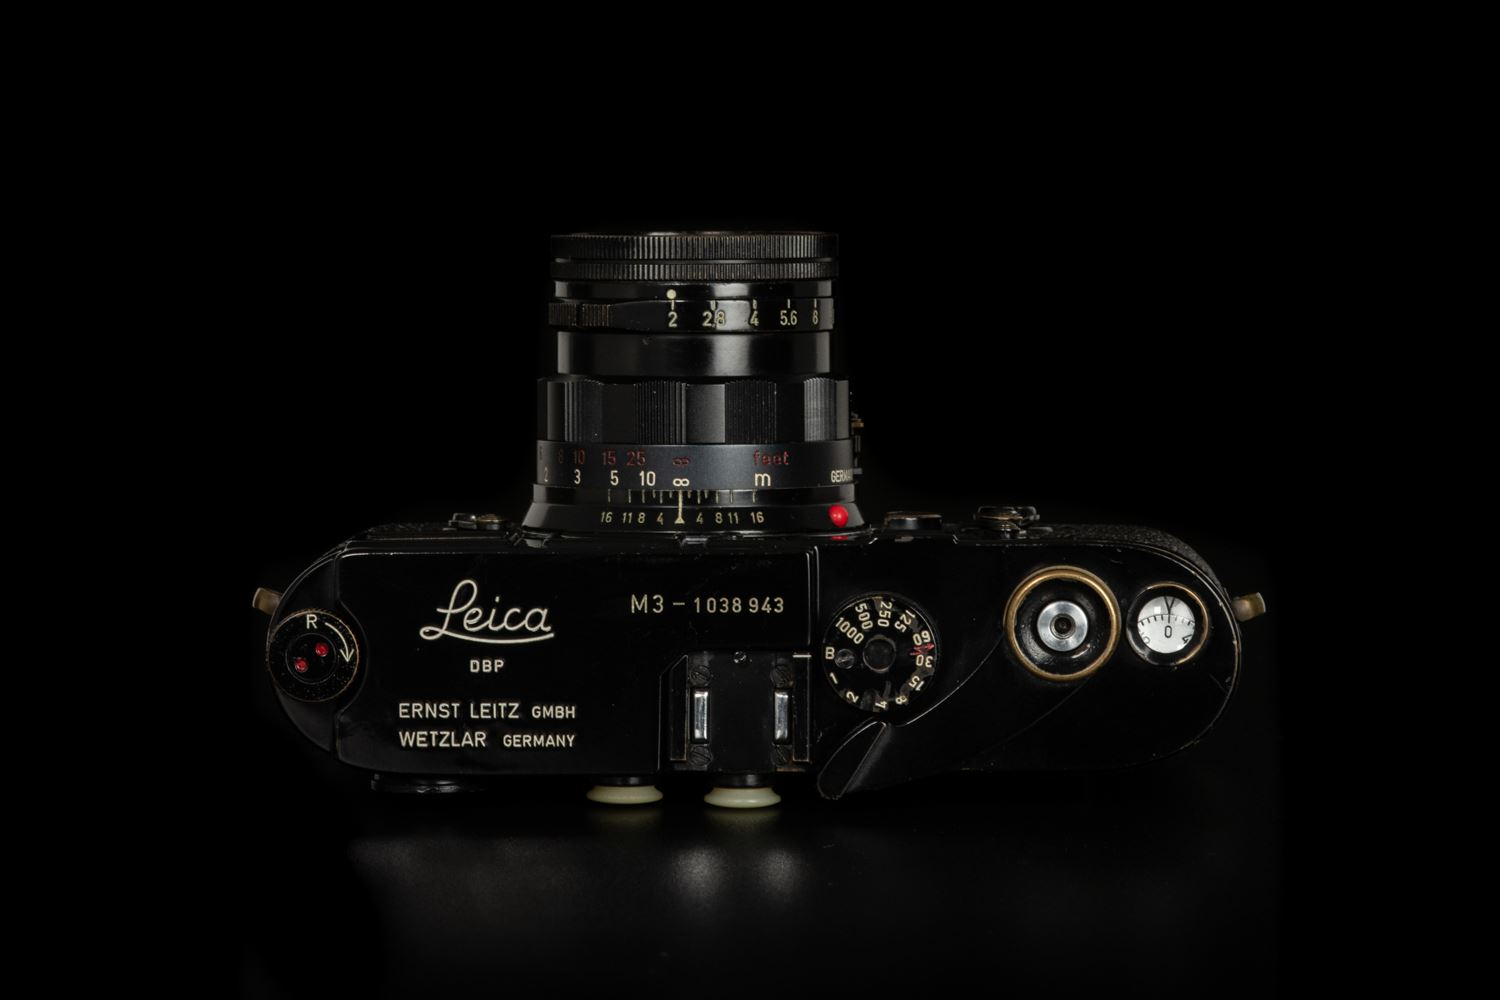 Picture of Leica M3 Original Black Paint with Leica Summicron-M 50mm f/2 Rigid Ver.2 Black Paint